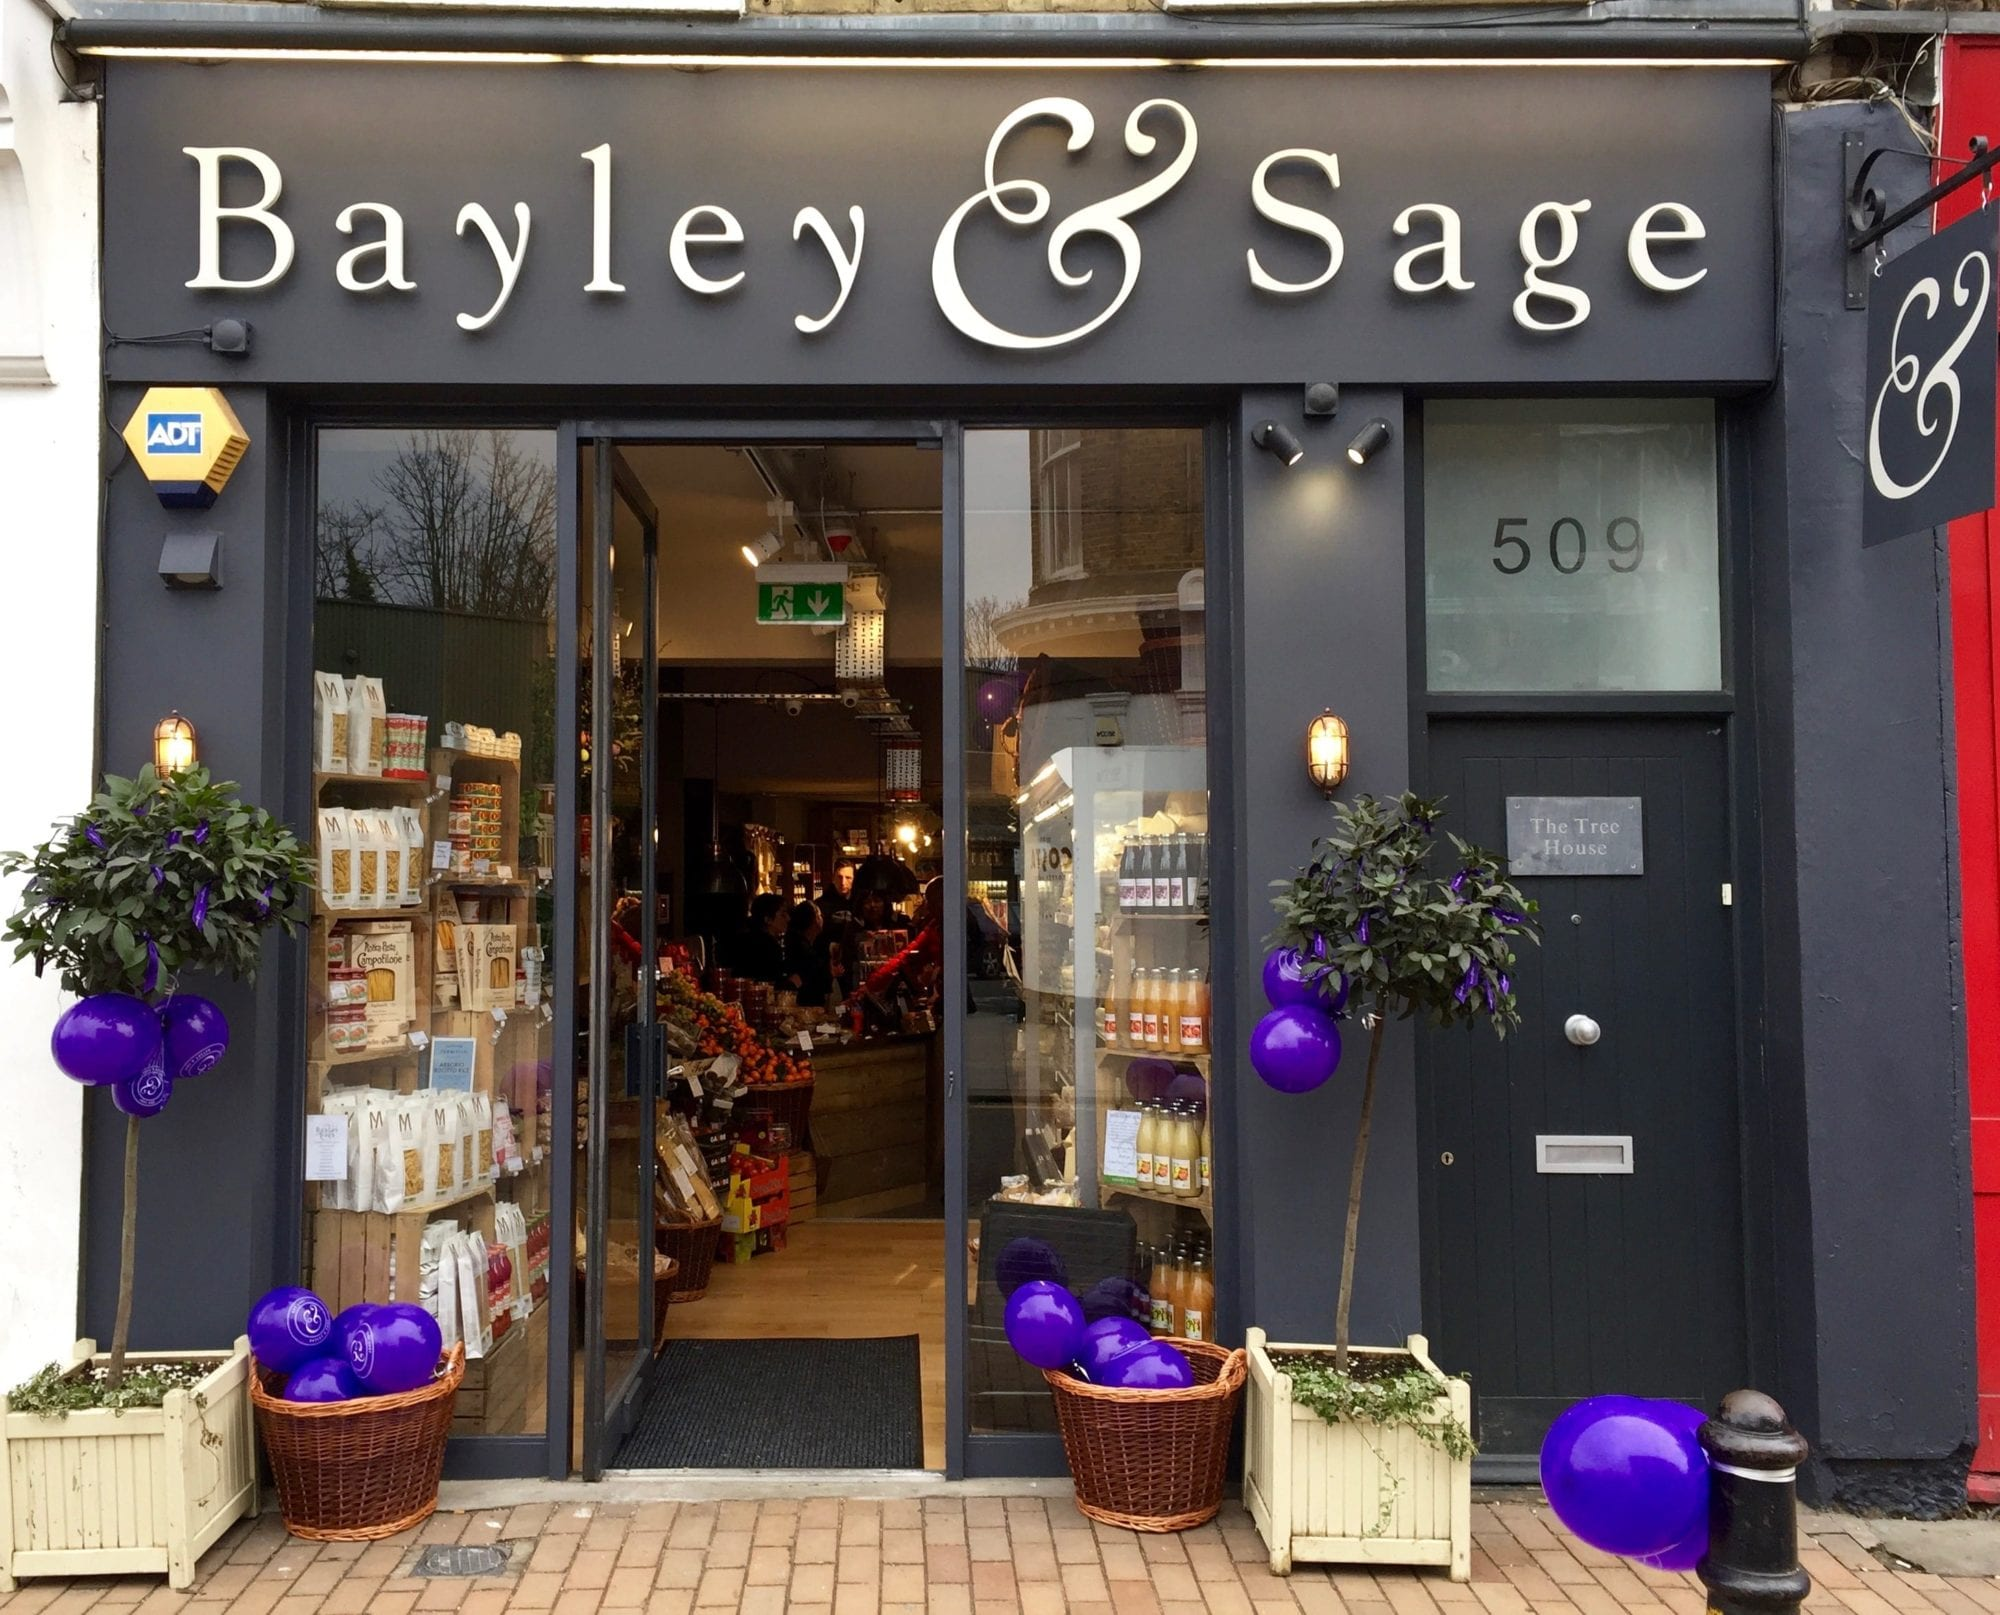 A New Bayley & Sage Store Opens On Old York Road, SW18